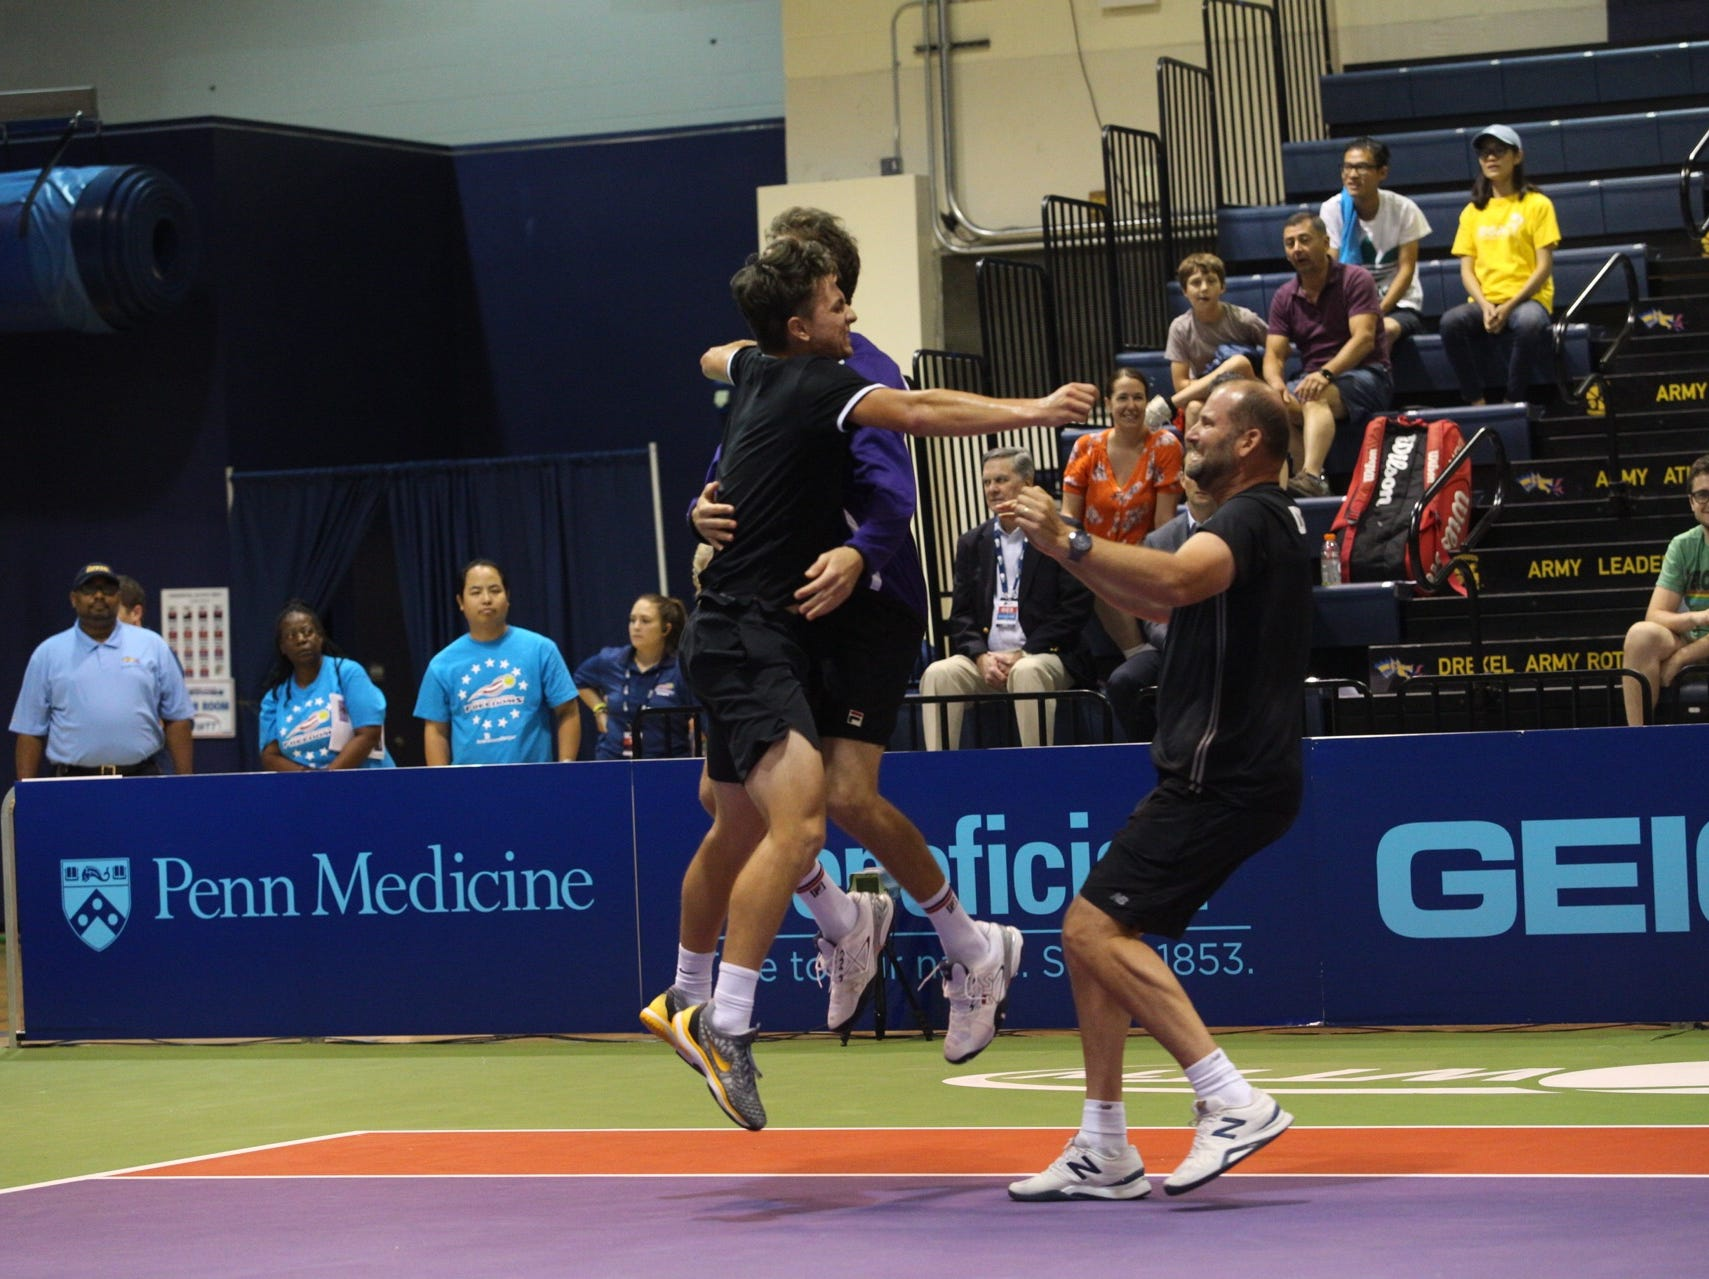 The Springfield Lasers won the World Team Tennis championship final in Philadelphia.